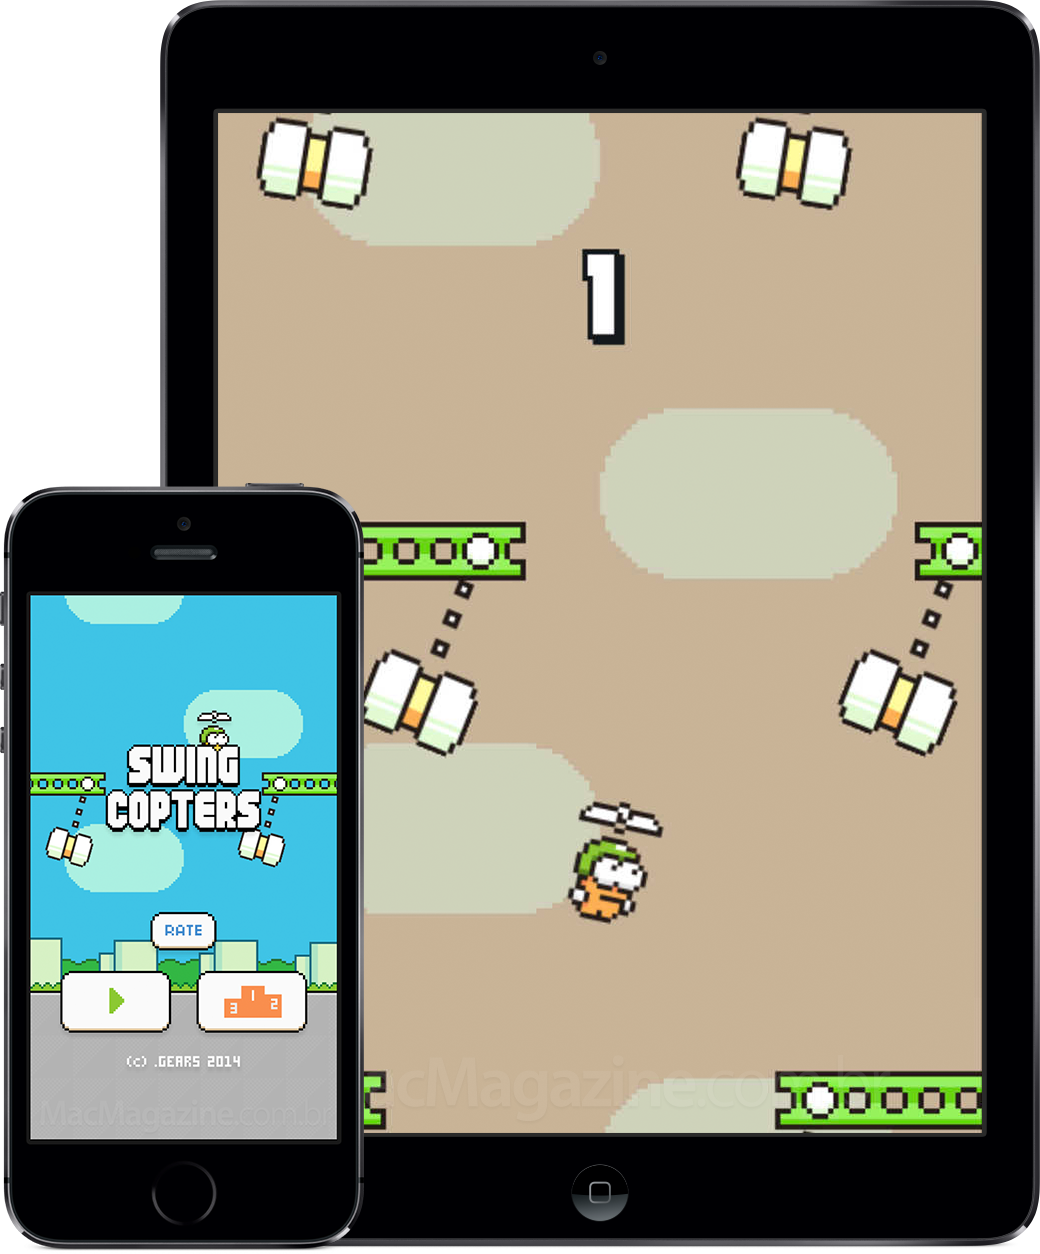 Swing Copters - iGadgets